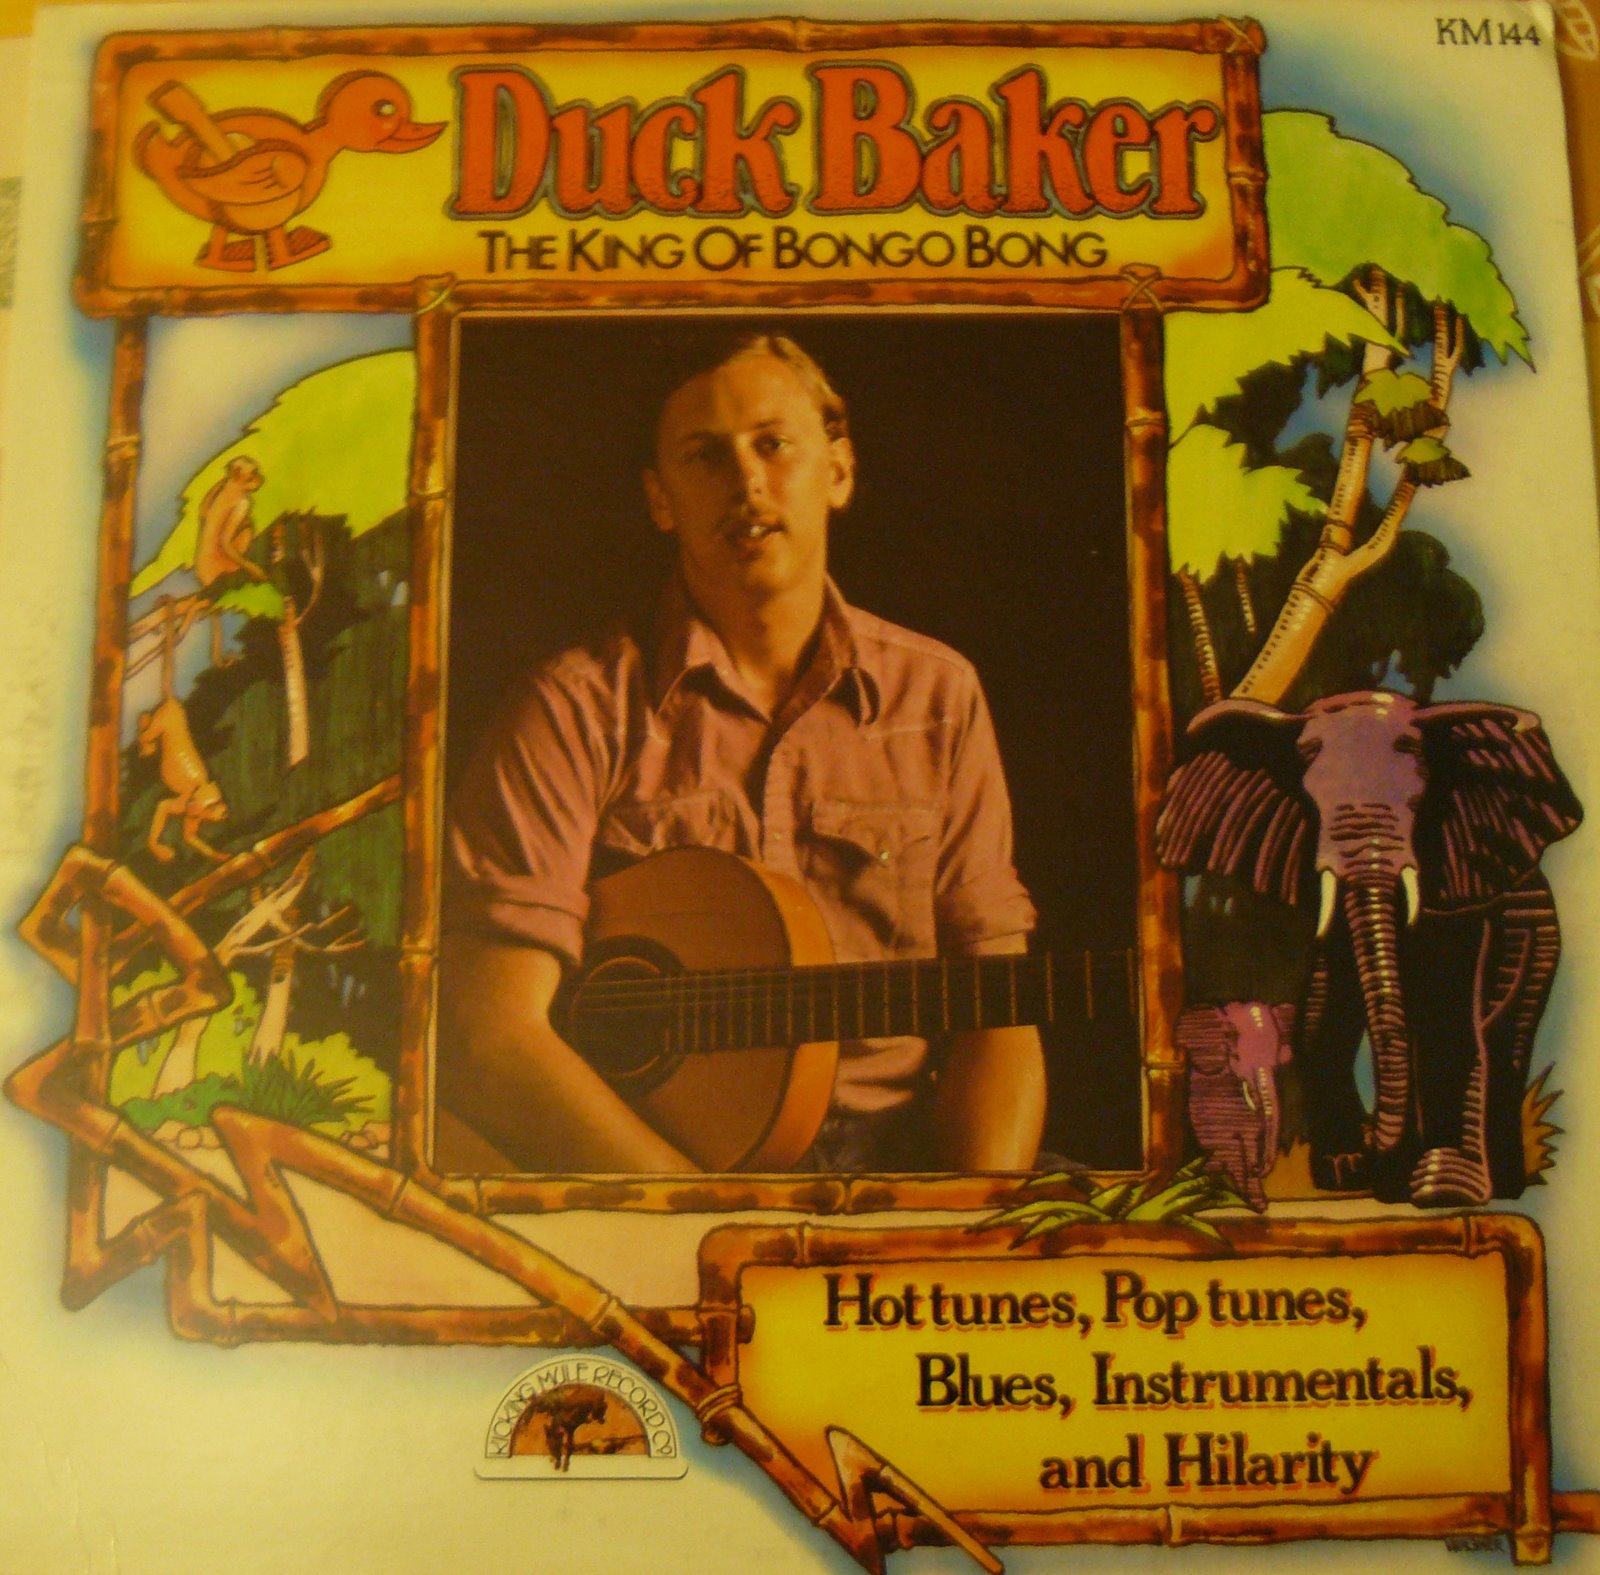 Duck Baker - The King Of Bongo Bong